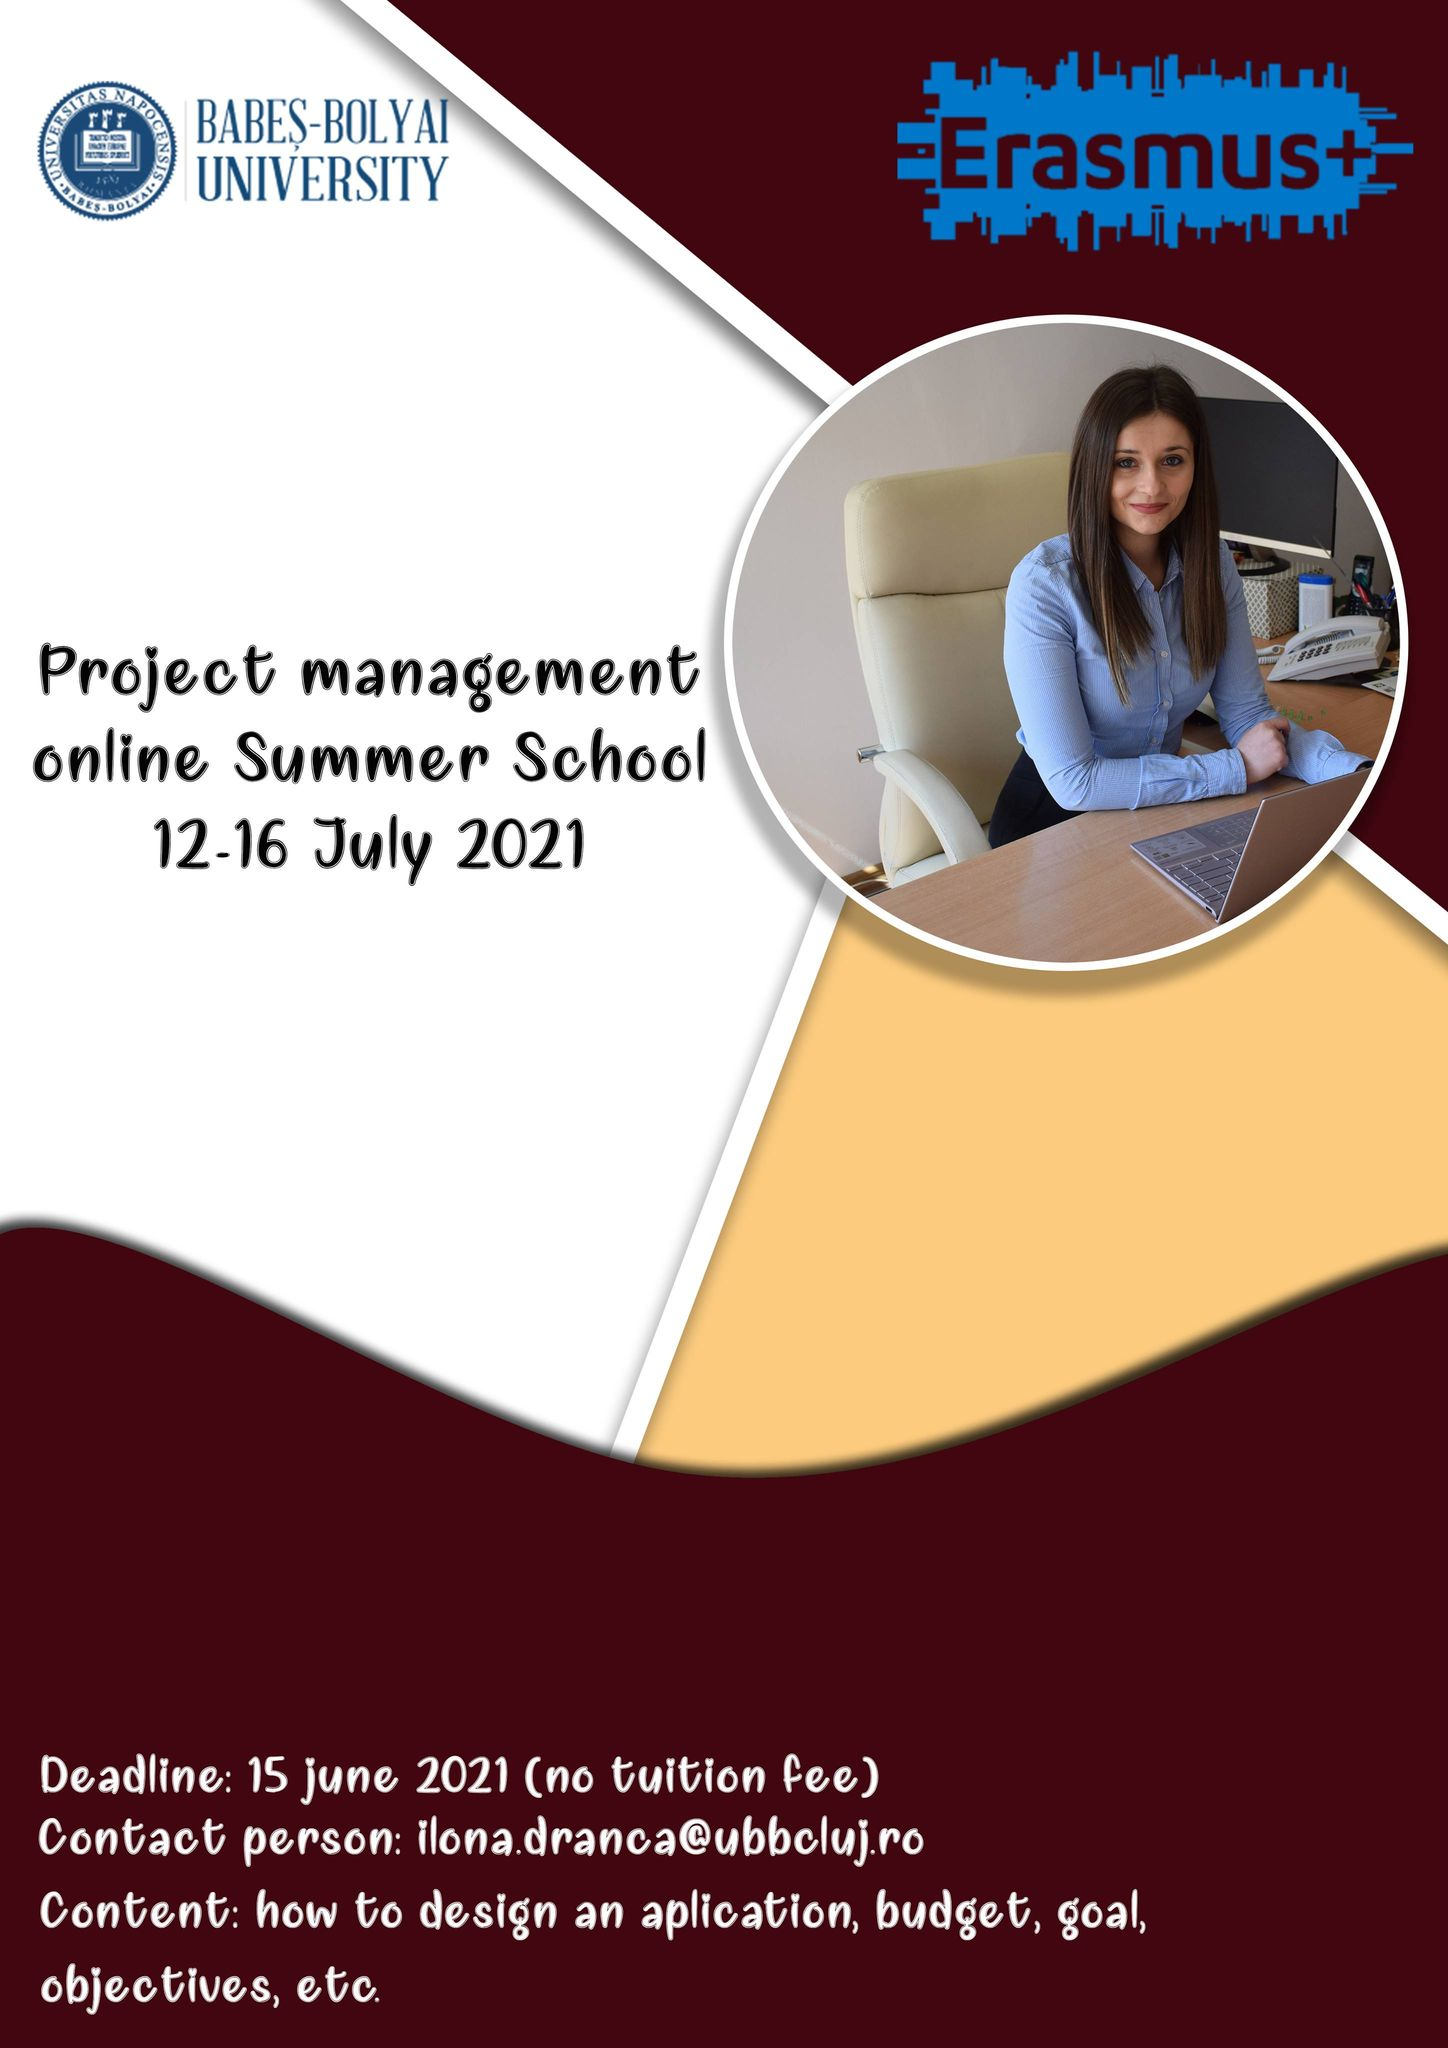 Project management online Summer School 12-16 July 2021